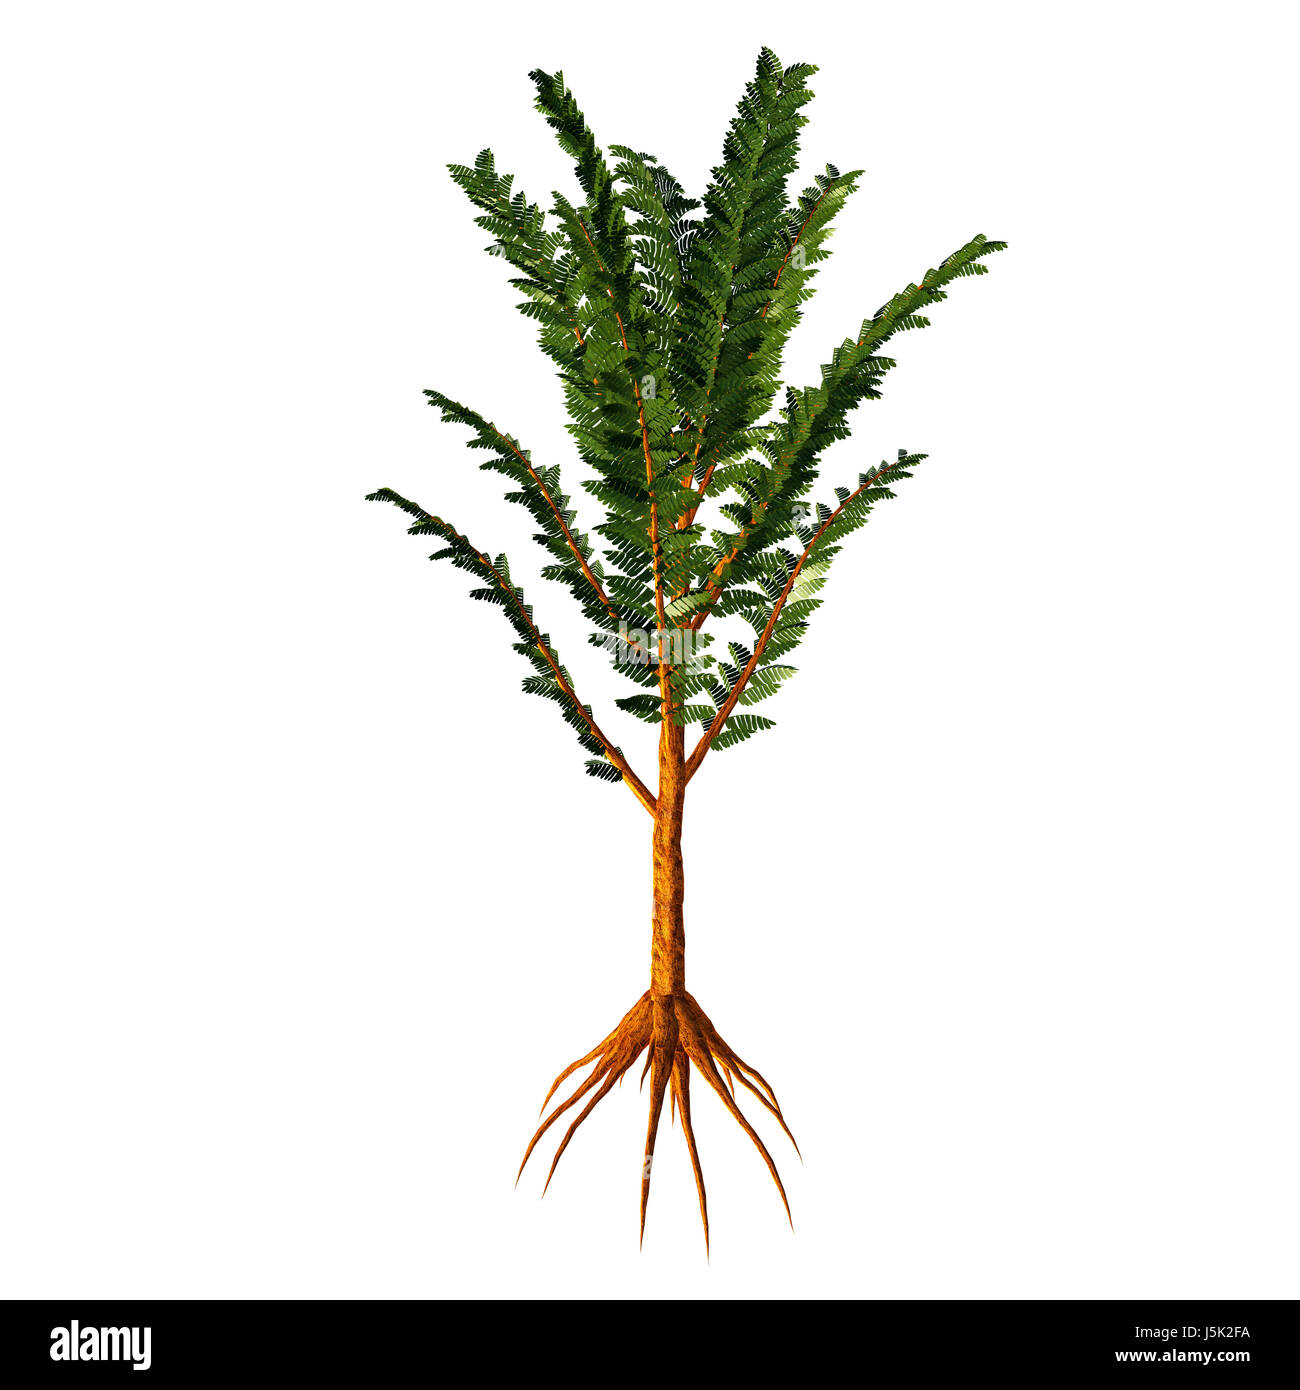 Pachypteris sp Tree - Pachypteris lived during the Mesozoic Era as a low growing plant with a woody trunk and was - Stock Image